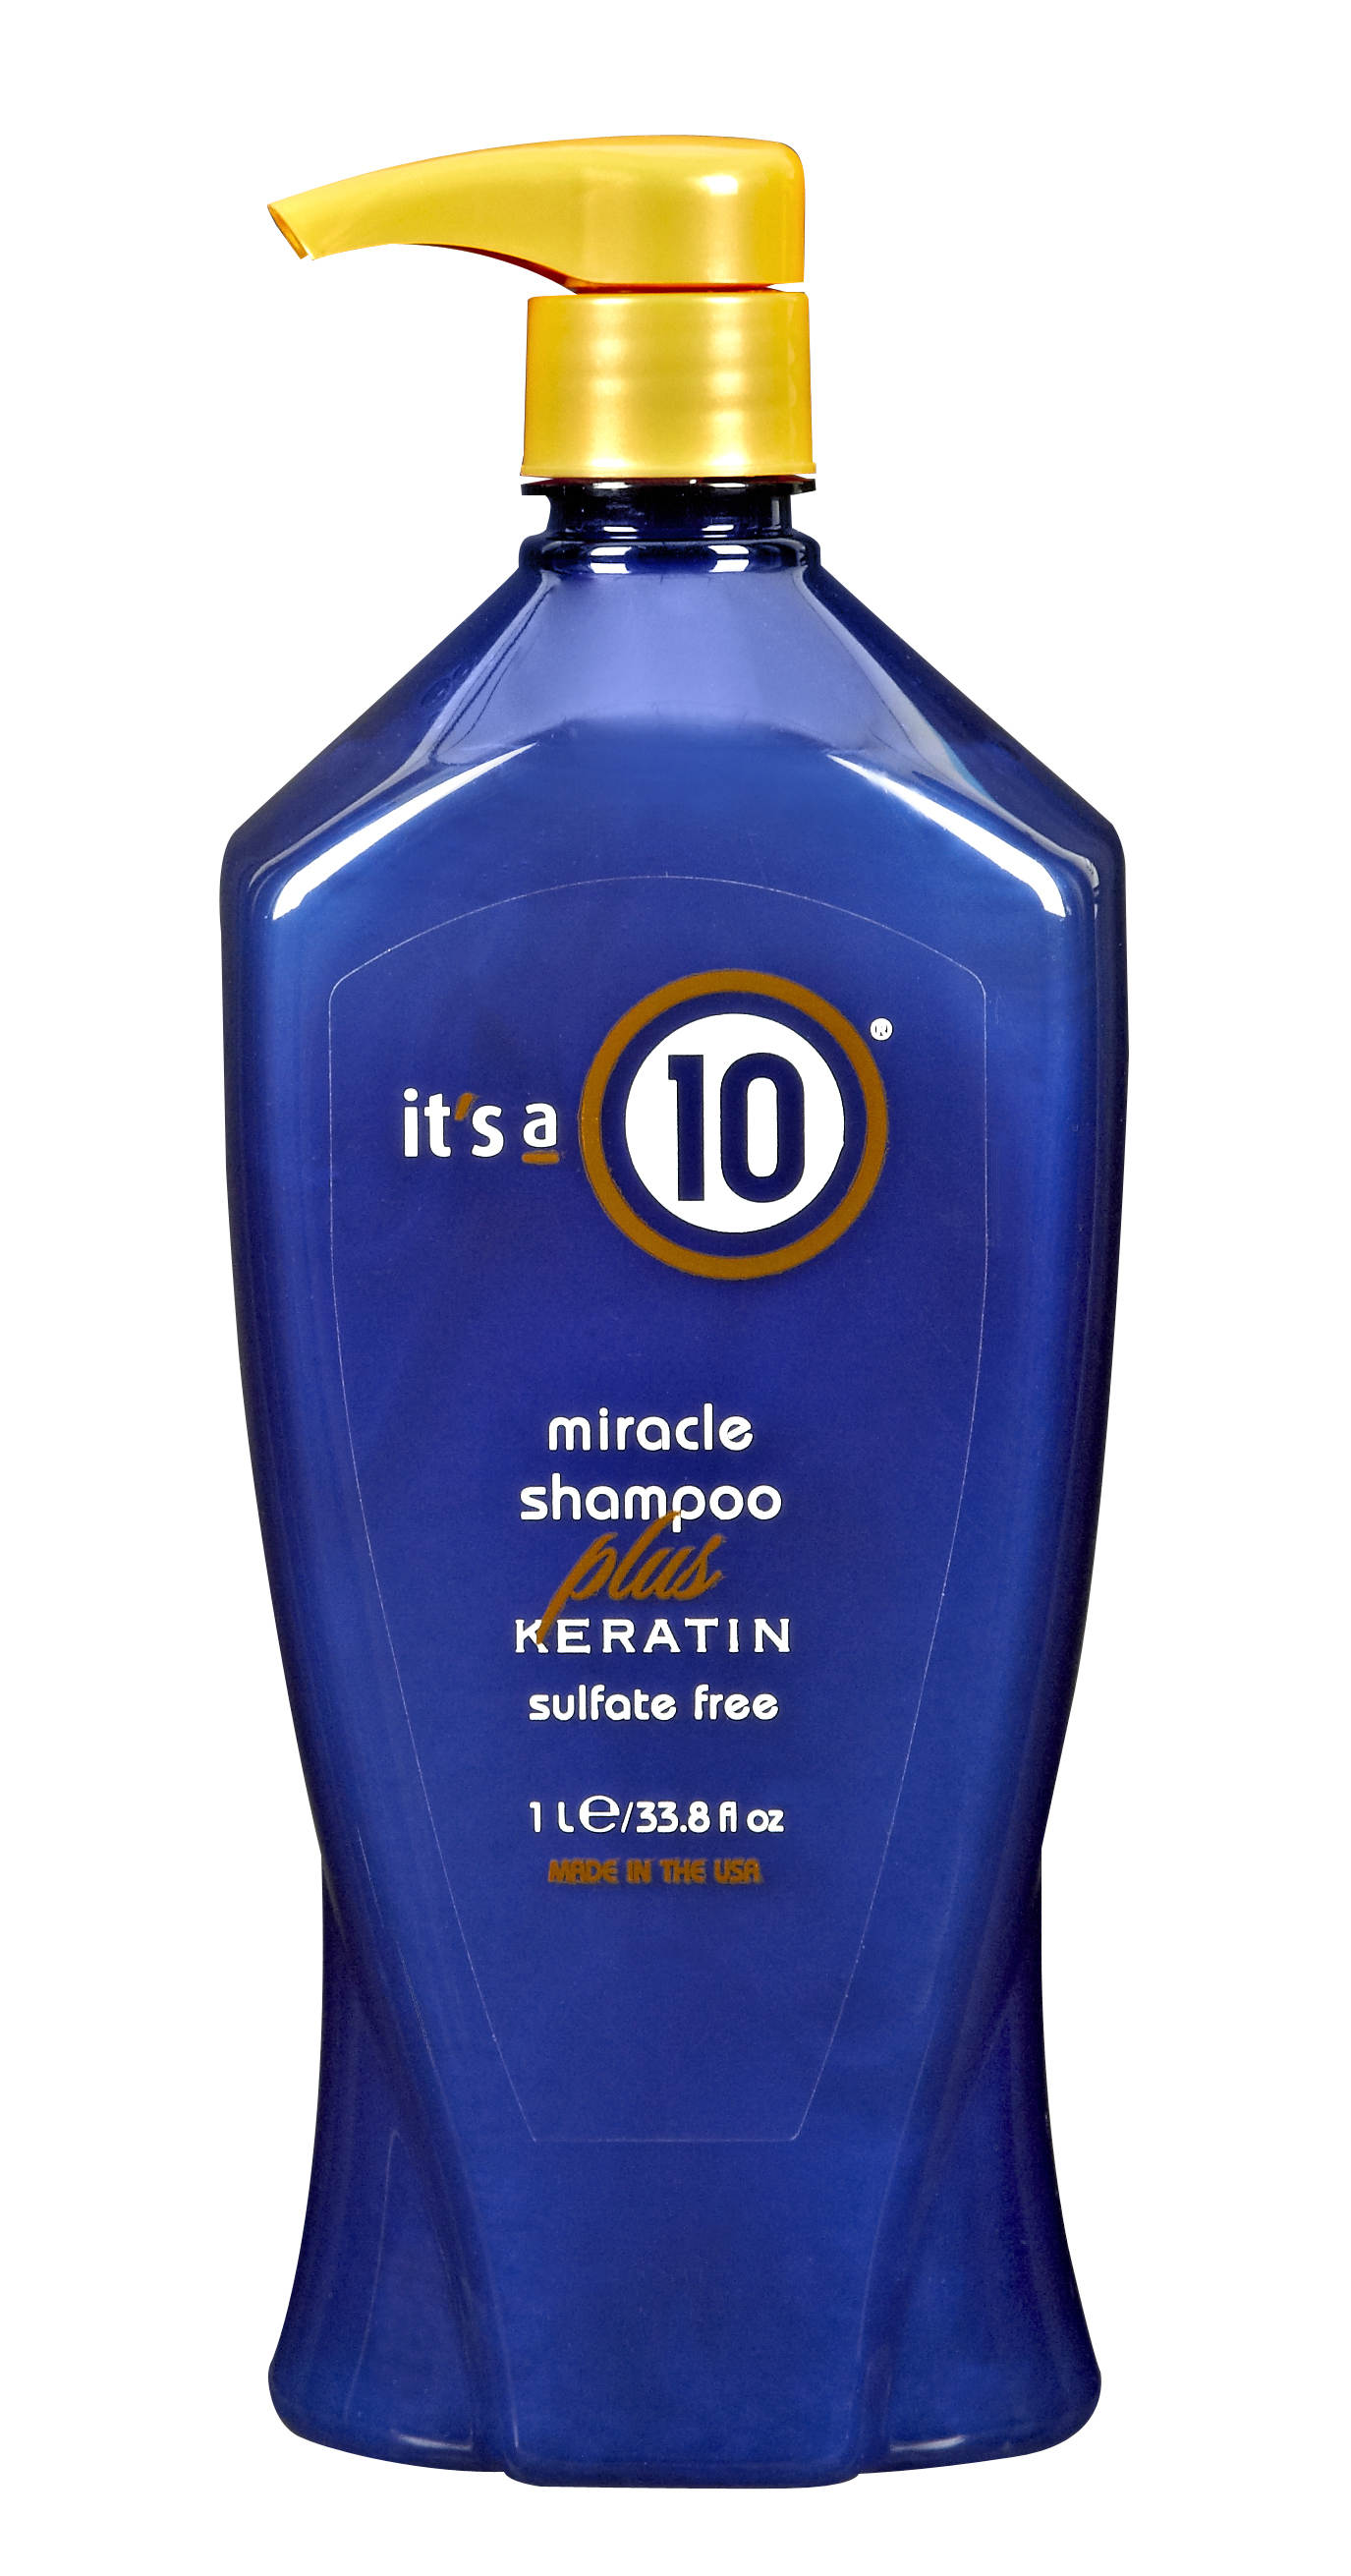 (.99 Value) It's A 10 Miracle Shampoo-Plus Keratin-33.8 Oz